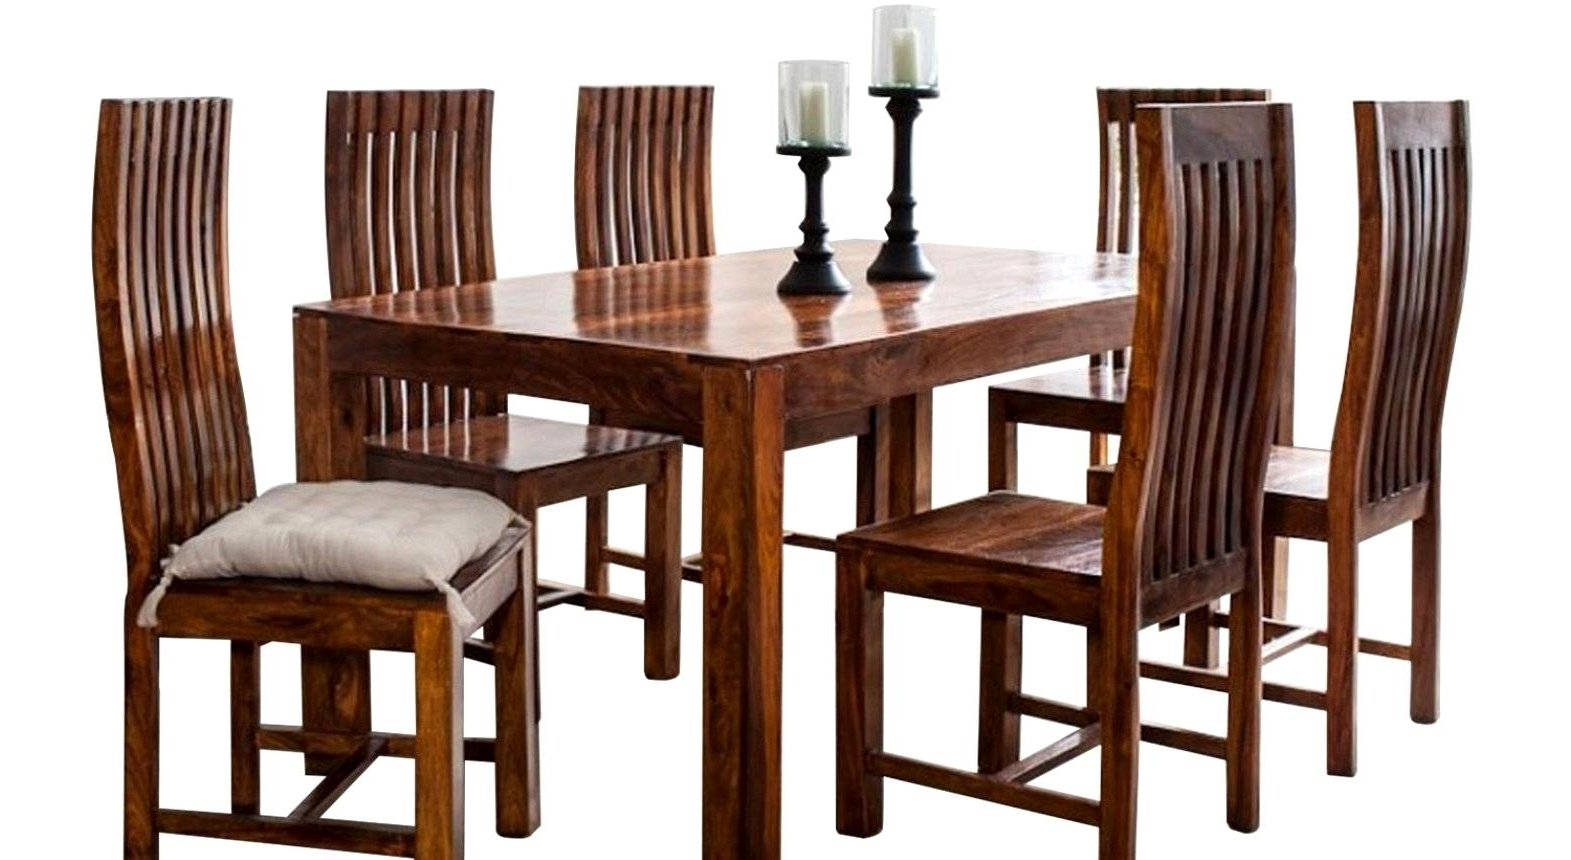 Splendid Sheesham Wood Dining Table Cm Dining Table Indian And With Regard To Most Recent Indian Style Dining Tables (View 4 of 25)